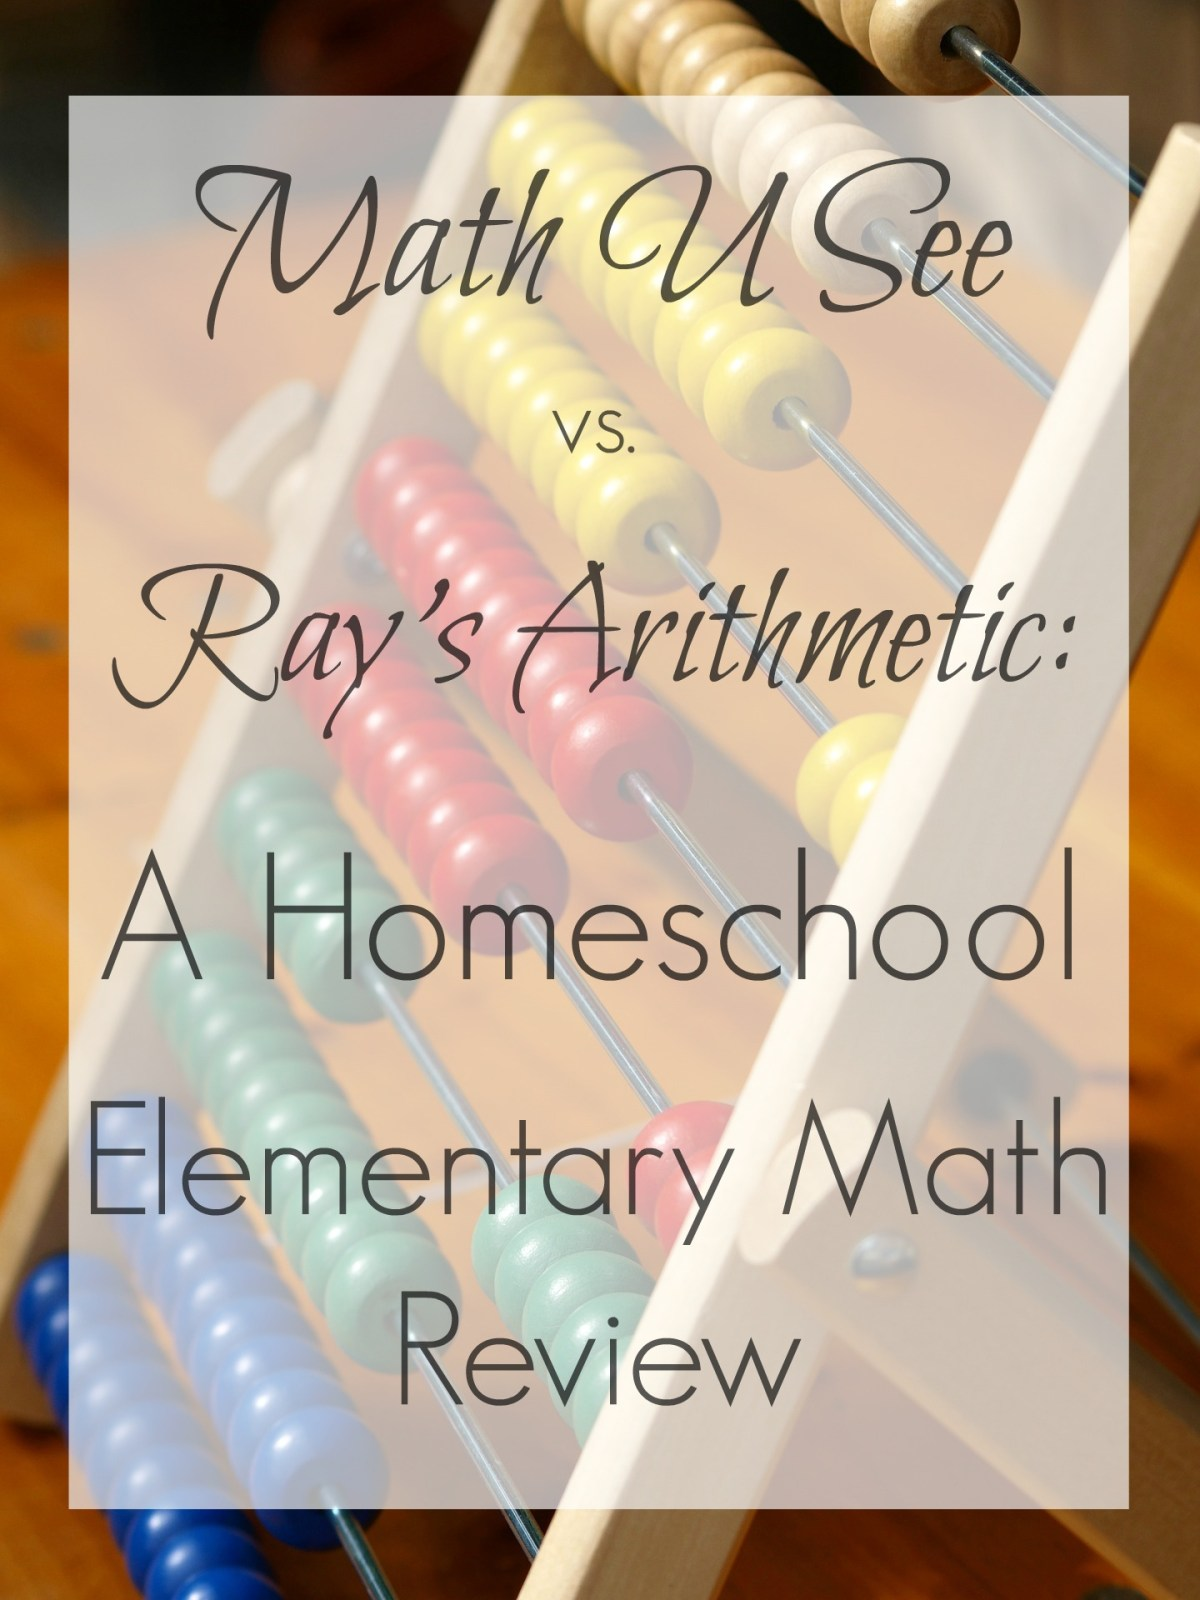 Tag/homeschooling families - Tag Homeschooling Math U See Vs Ray S Arithmetic A Review